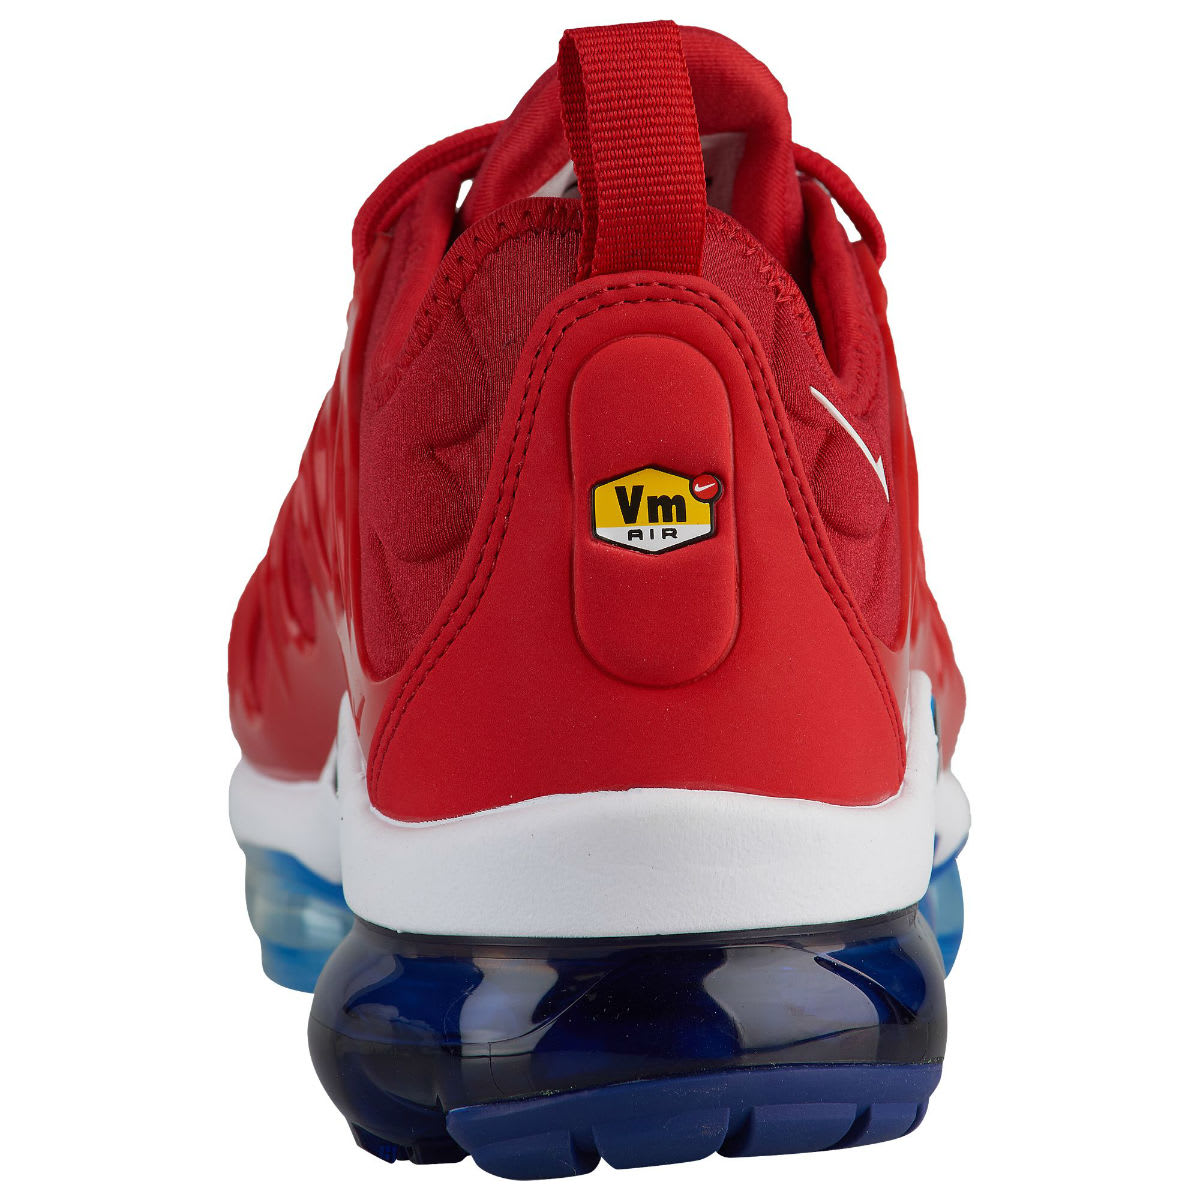 Nike Air VaporMax Plus USA Red White Blue Release Date 924453-601 Heel